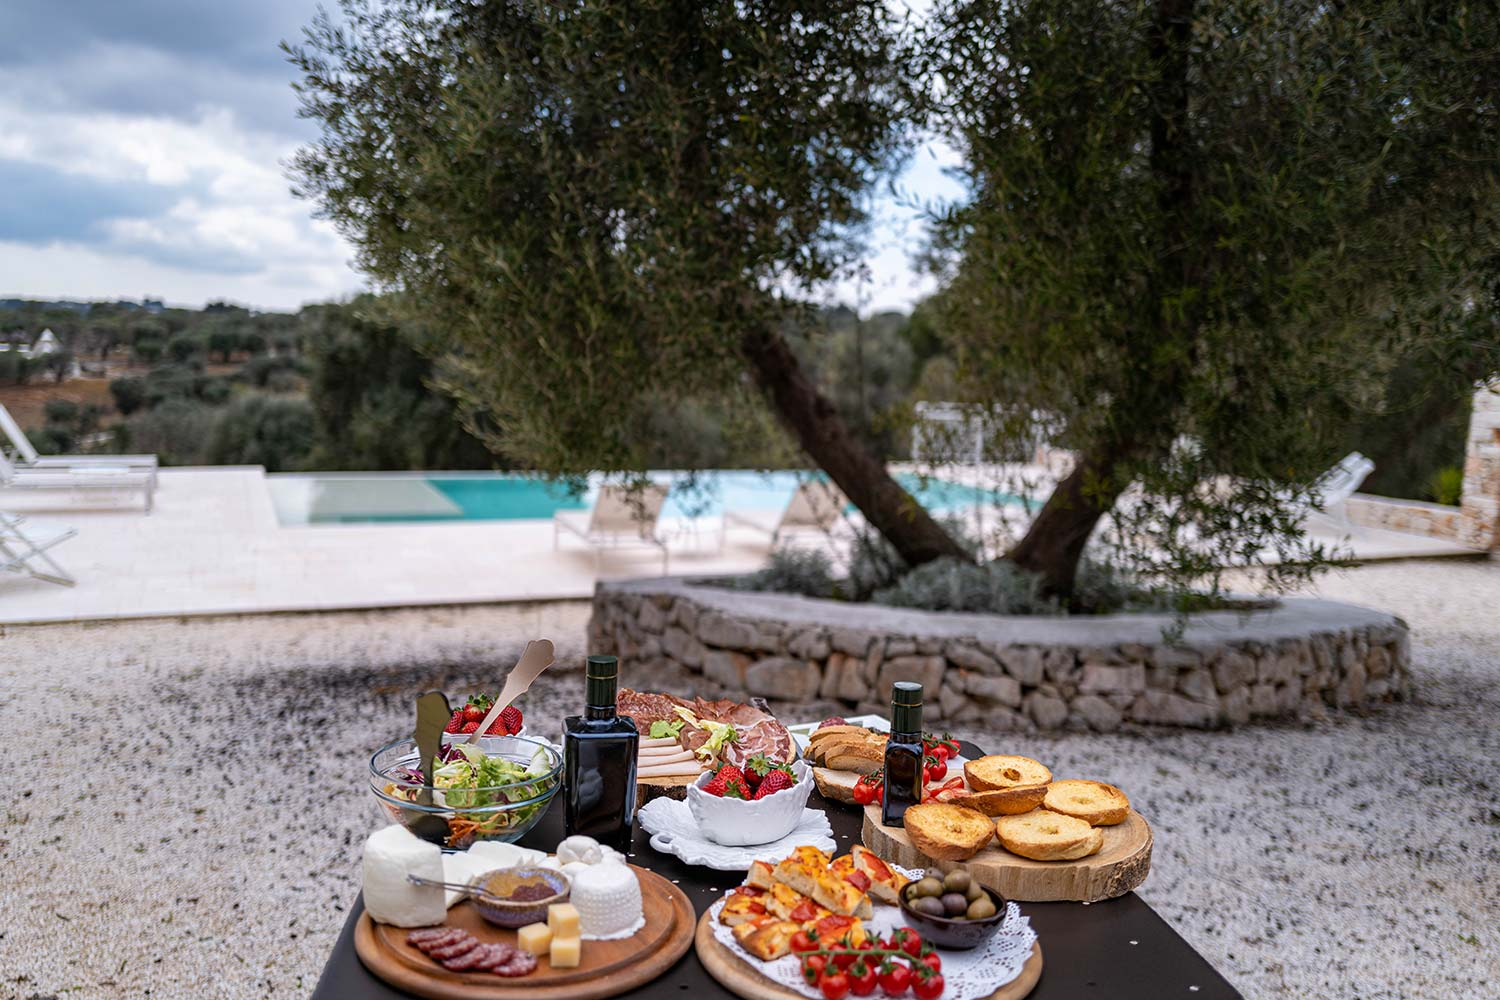 anniversaries, private parties, events and business meetings in our trulli